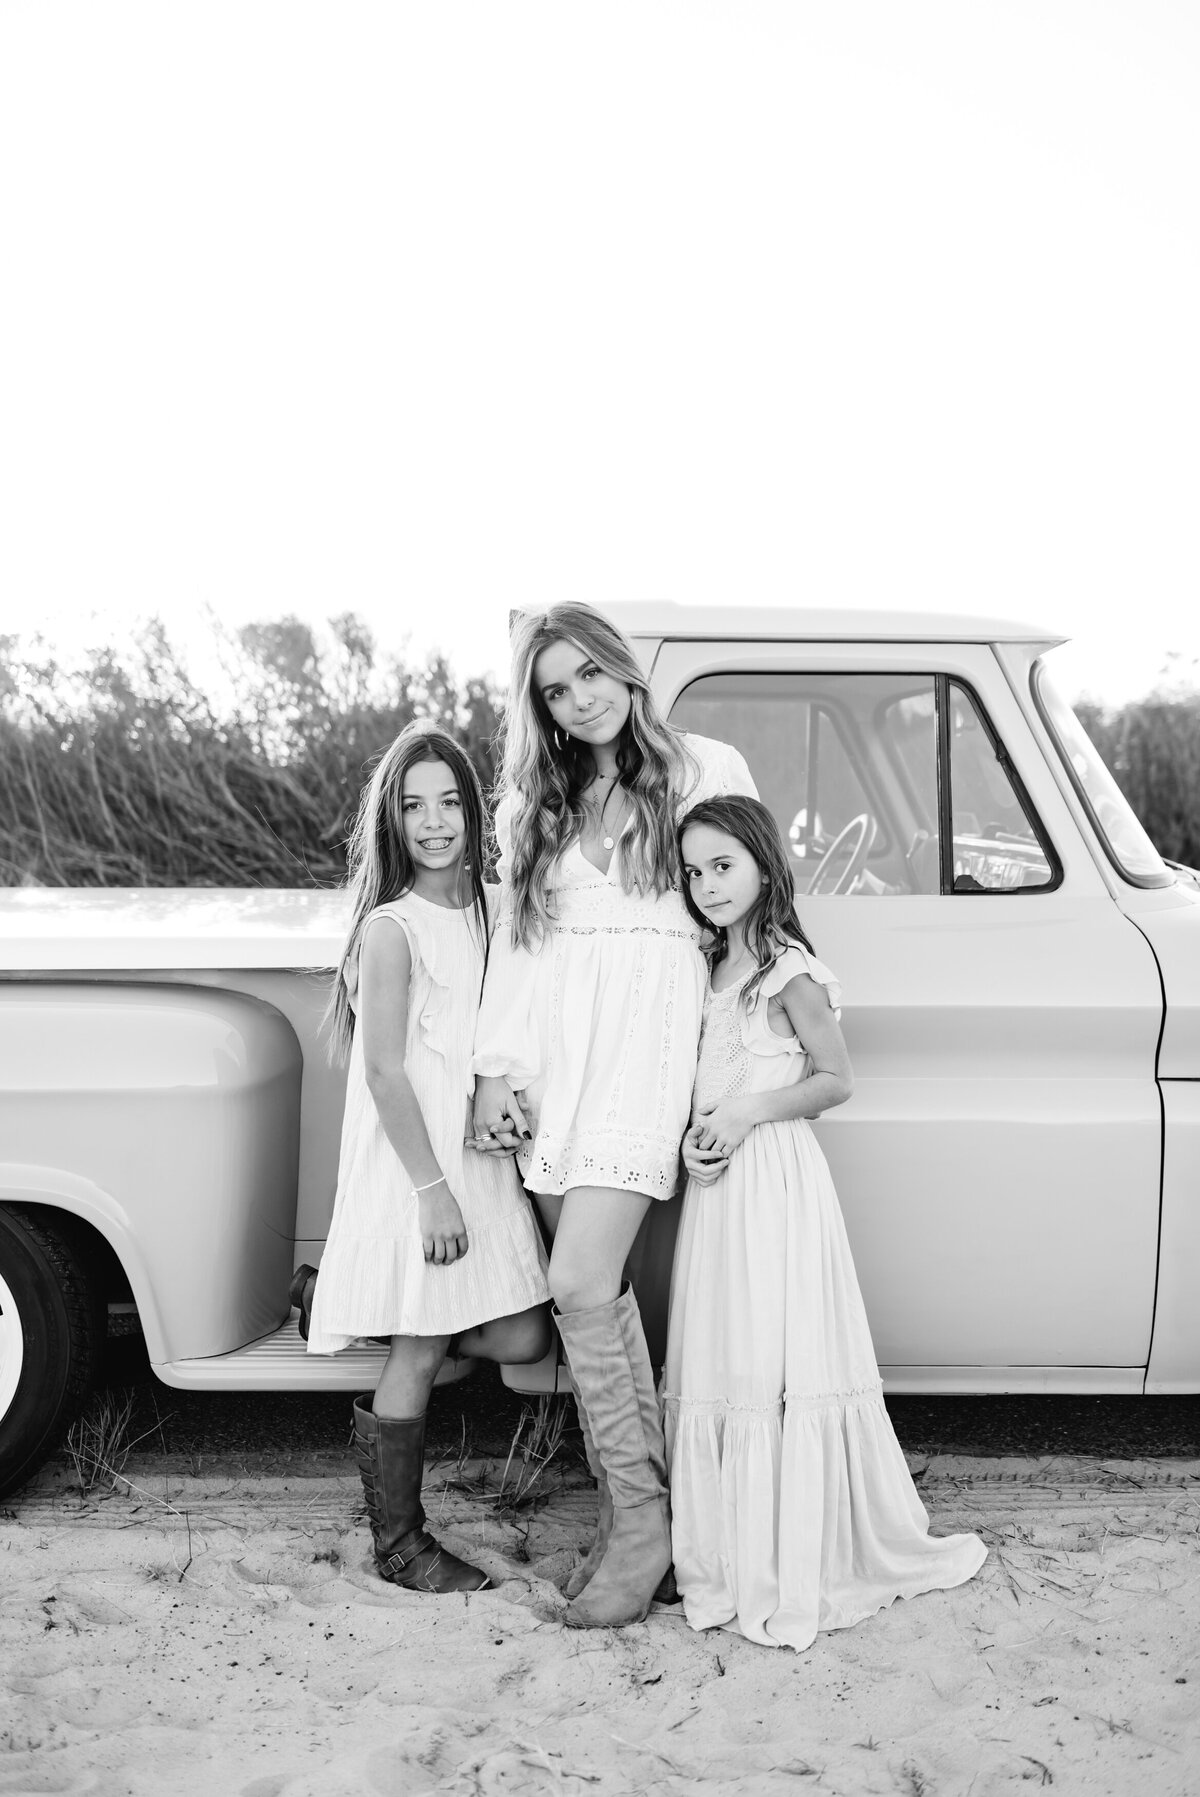 family-photographer-virginia-beach-tonya-volk-photography-64